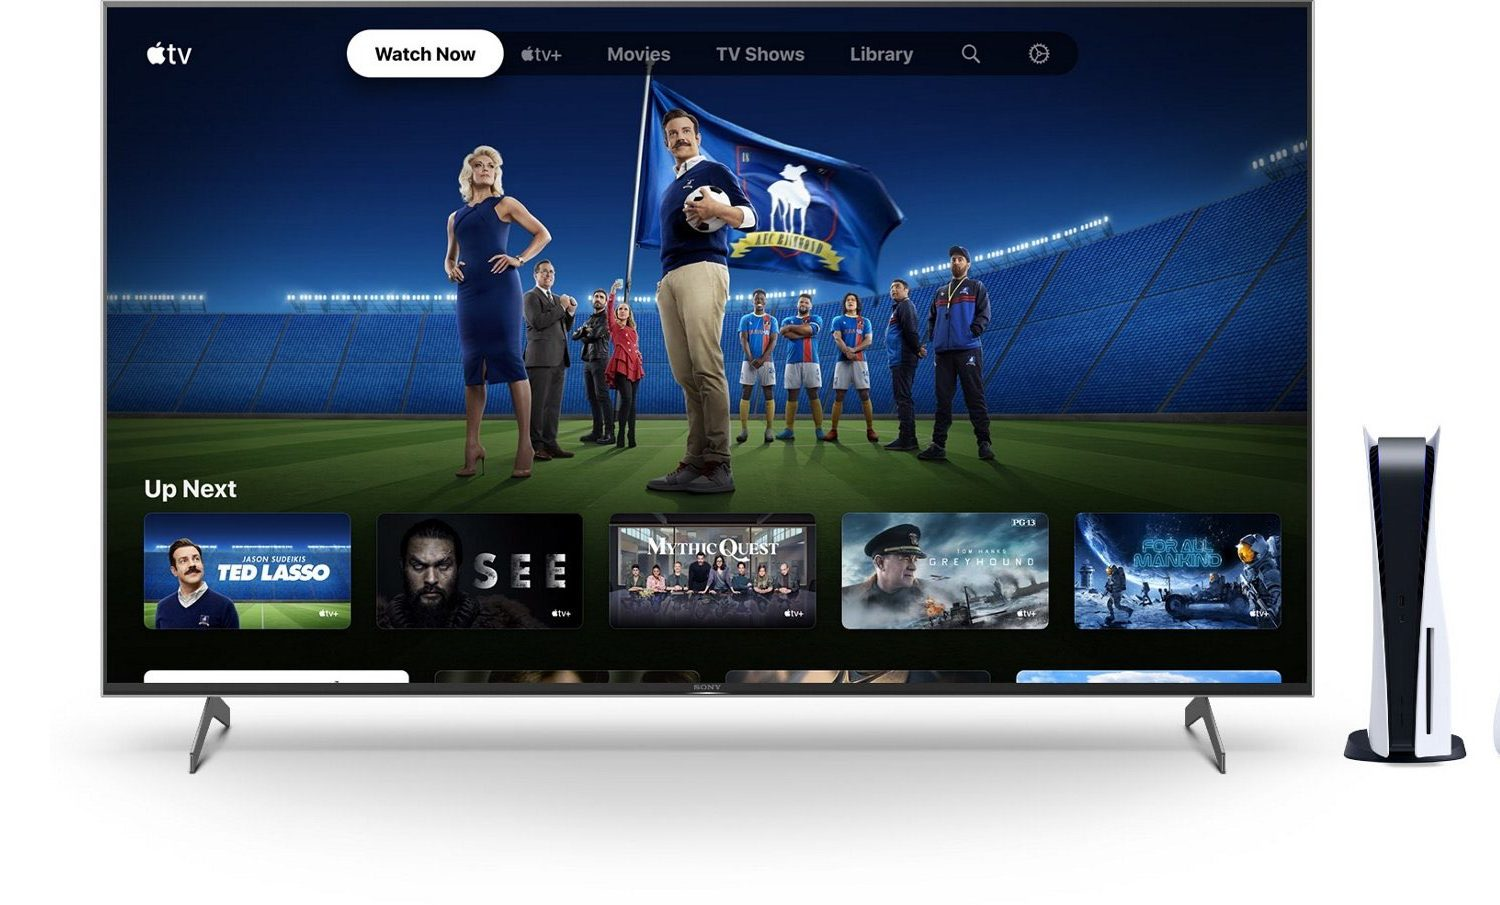 Promotional image showing a large TV set with the Applet TV app on the Ted Lasso page and a Sony PlayStation 5 console next to it